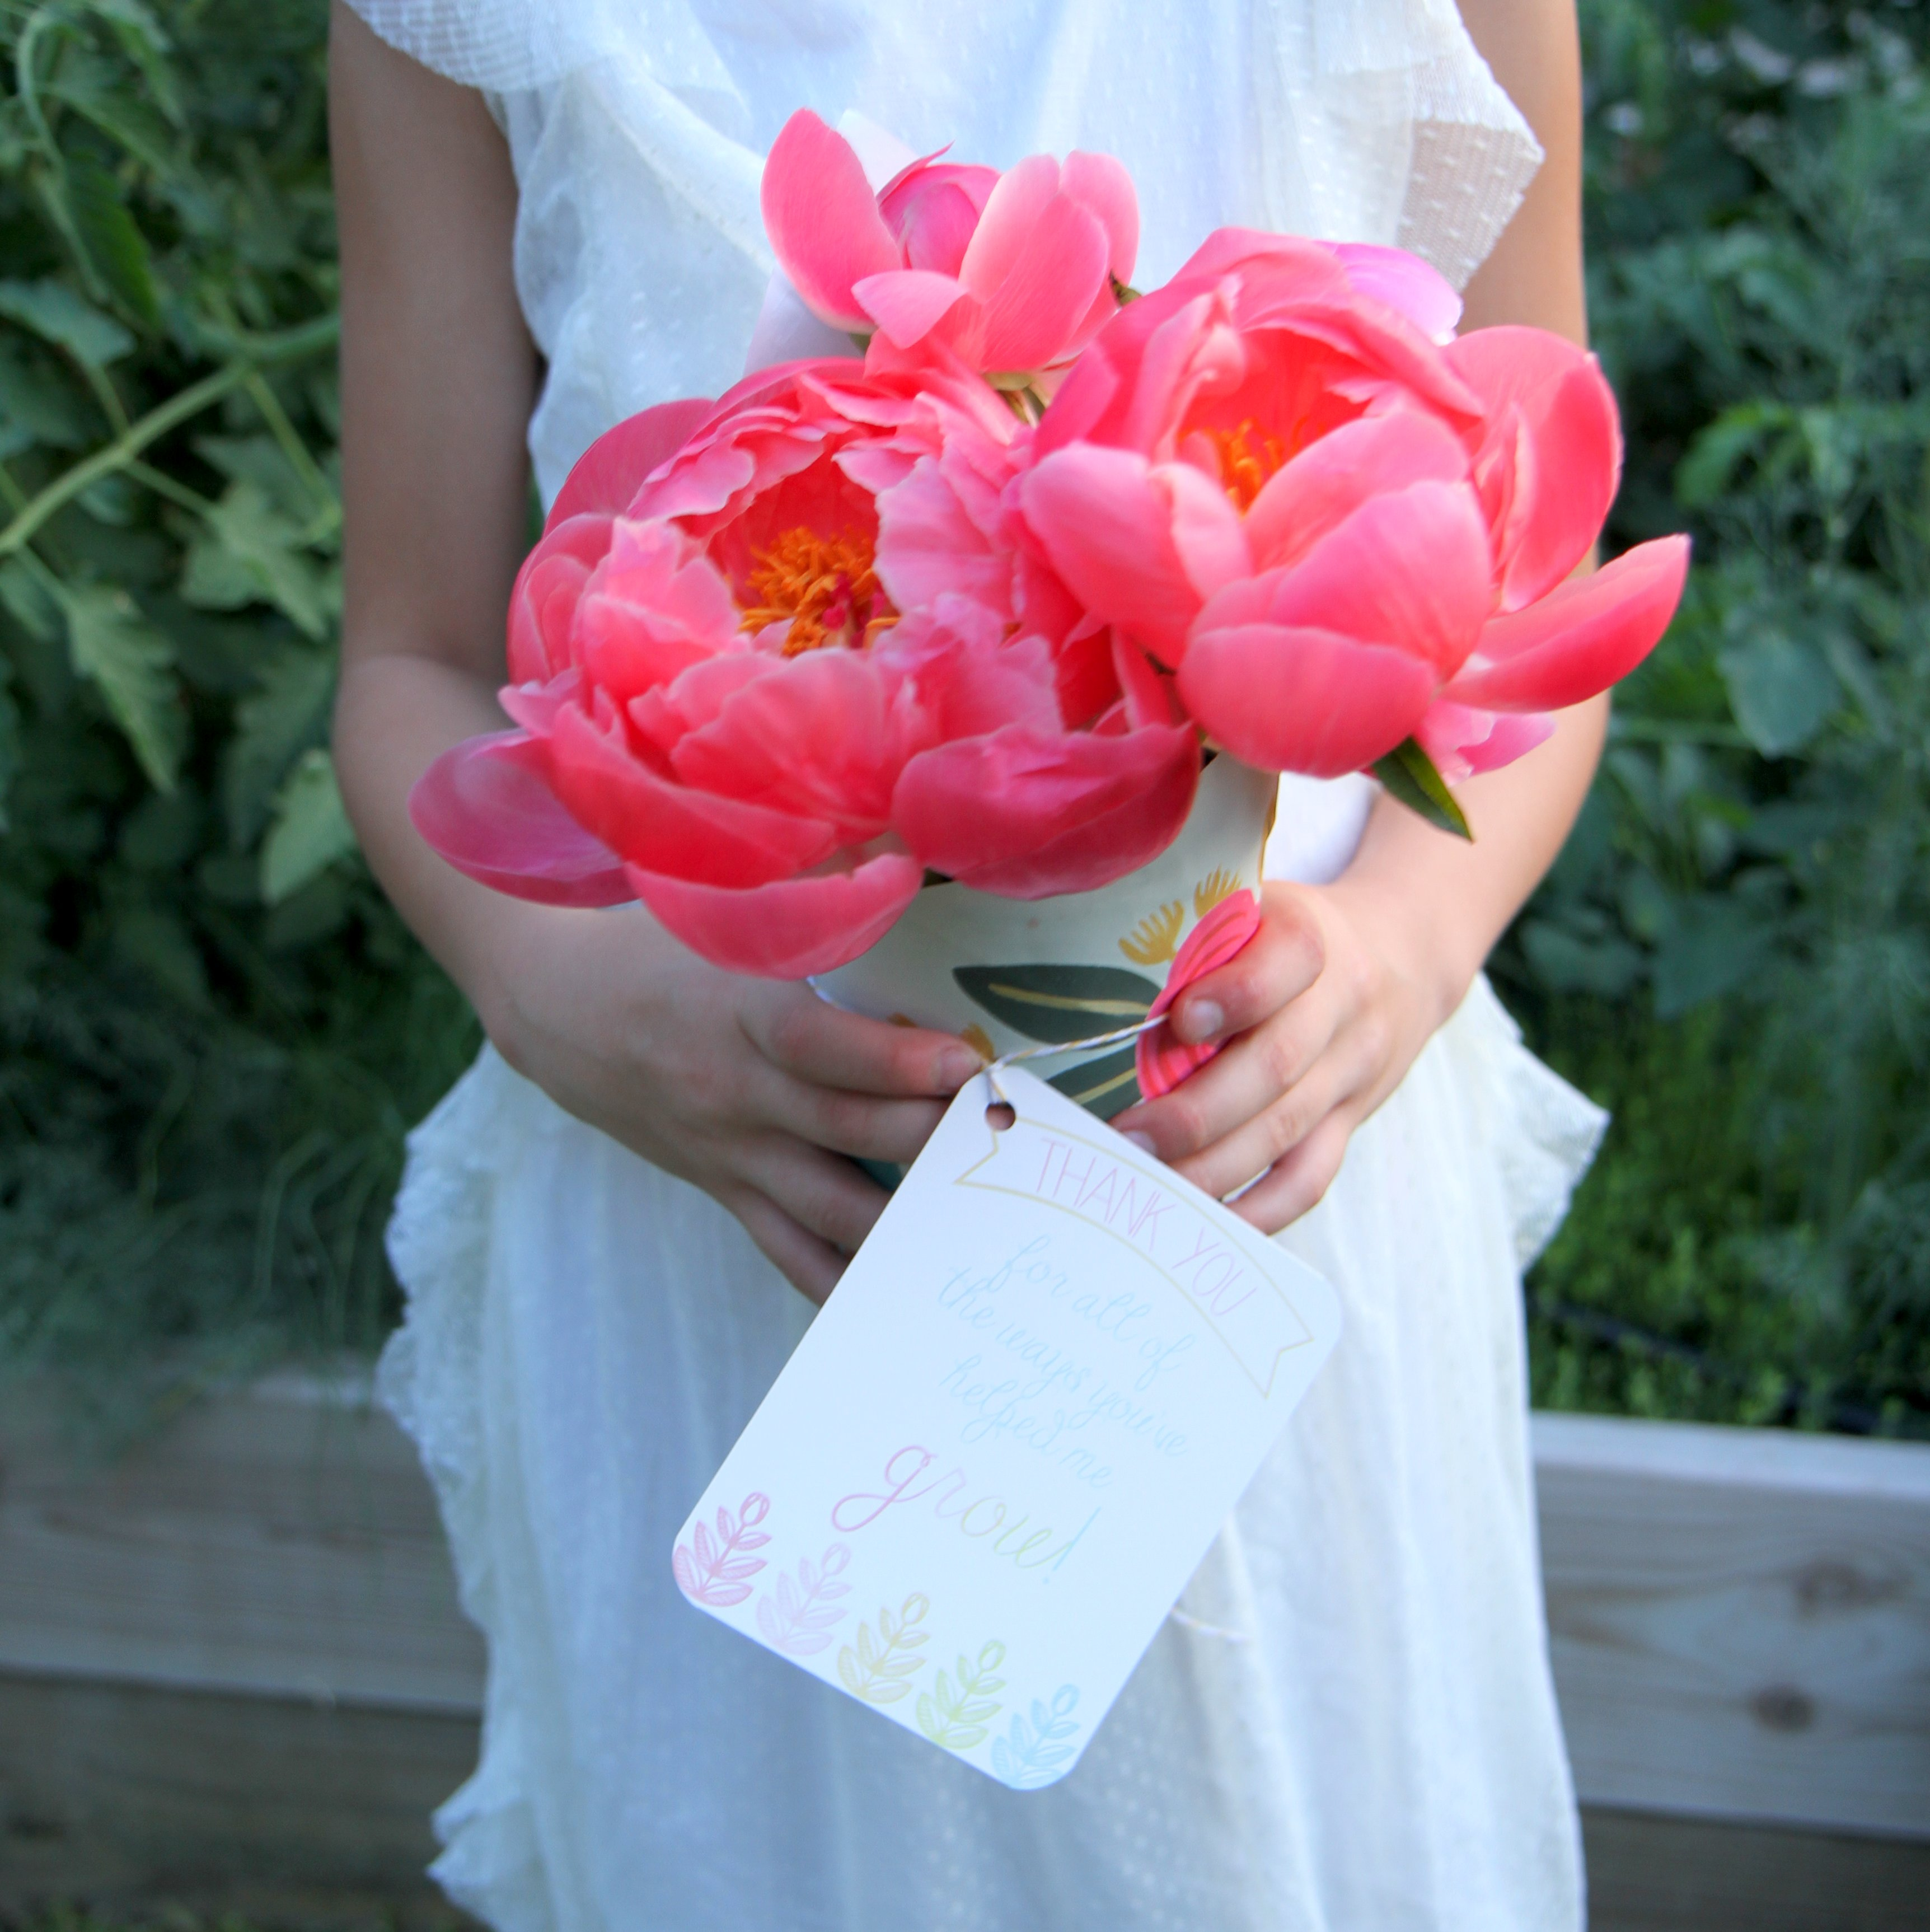 Easy, pretty DIY wrapped bouquets (for teacher appreciation, Mother's Day and every day gifting).